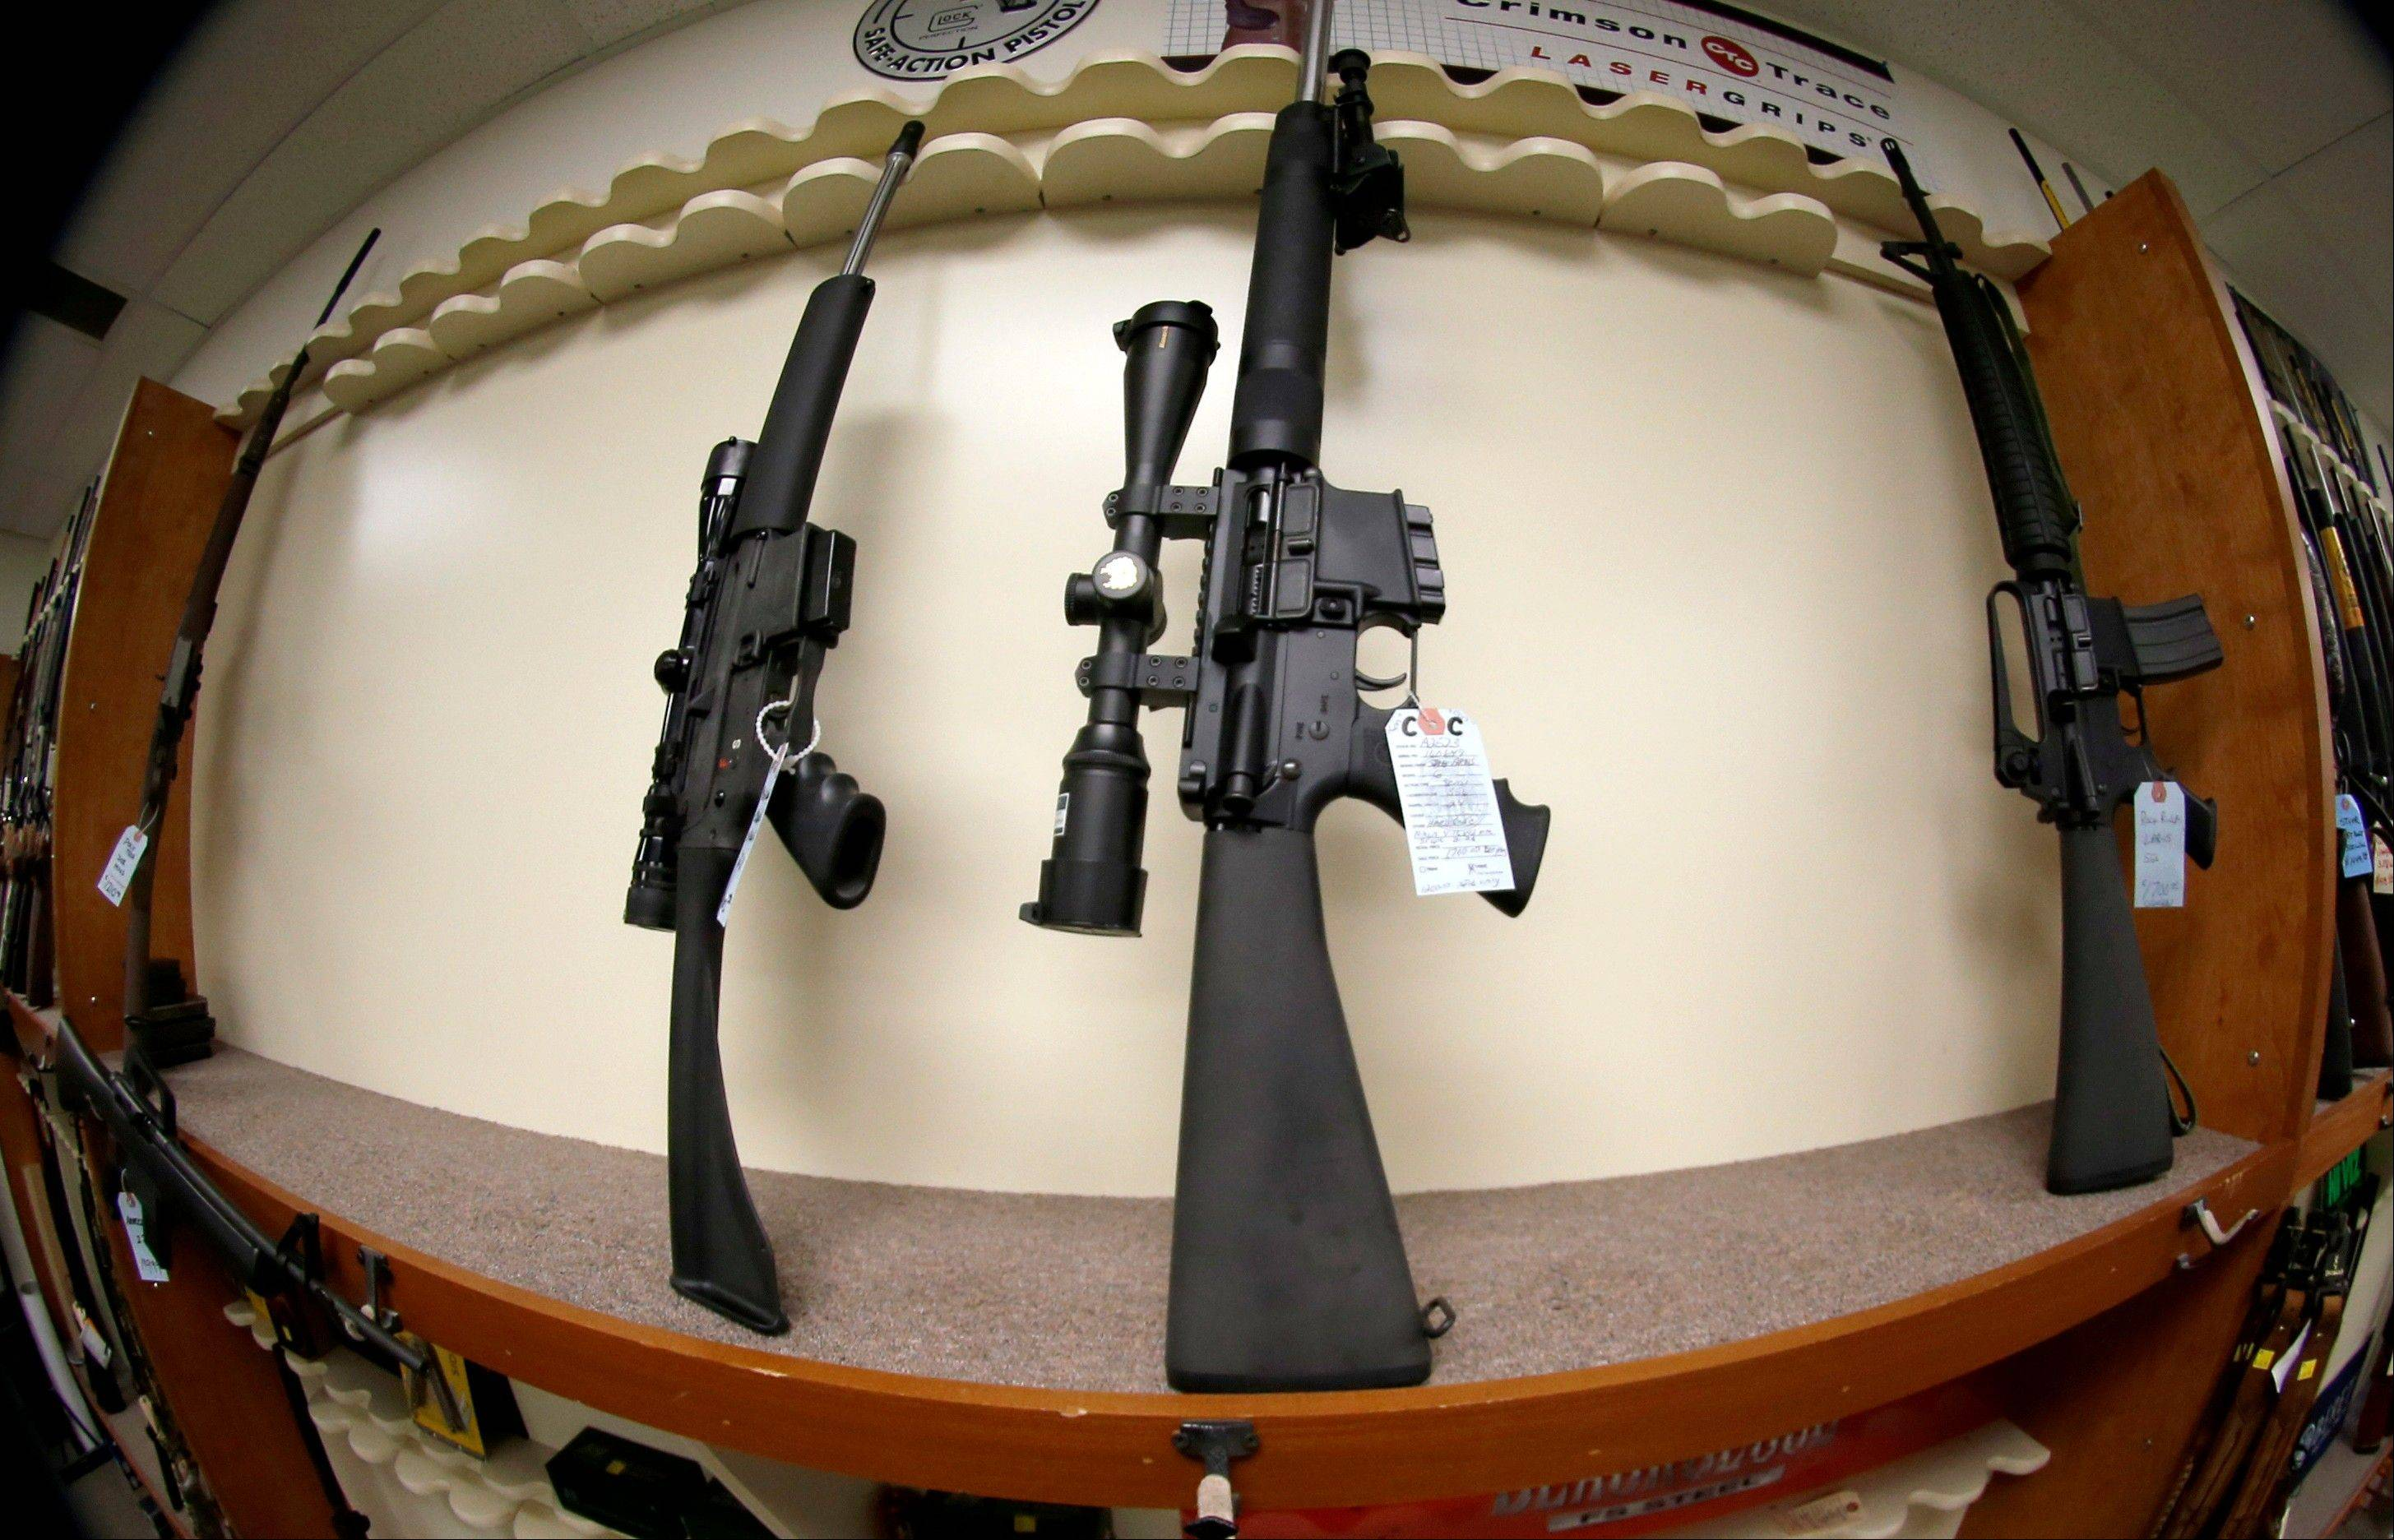 Highland Park has banned assault weapons like these on display at a shop in New Castle, Pa.